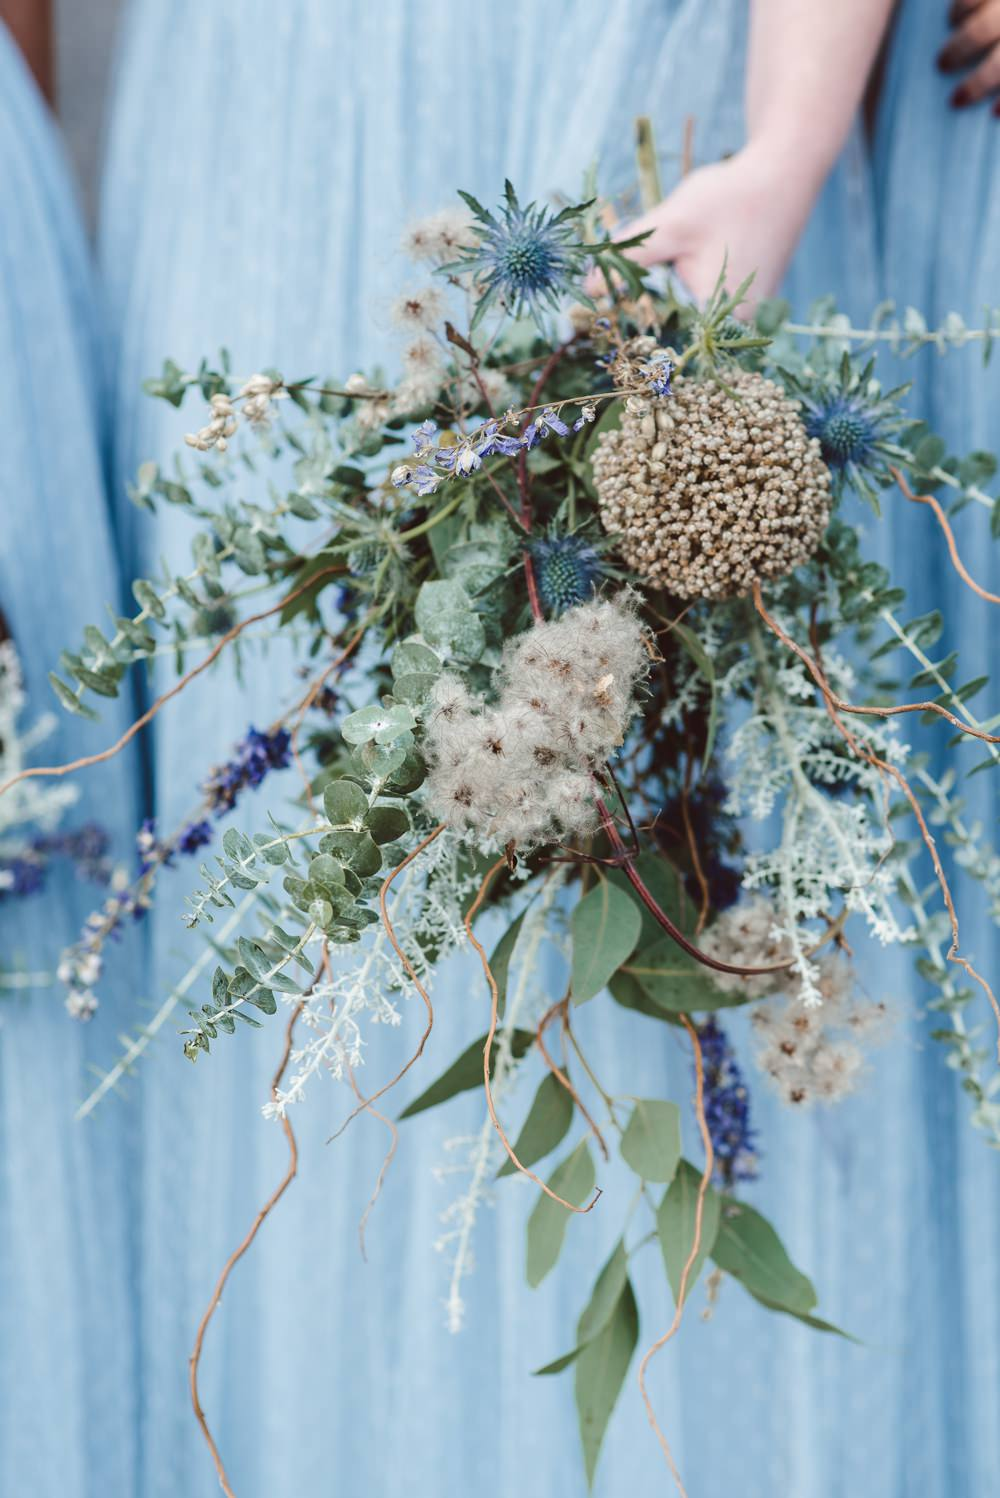 Bridesmaid Bouquet Greenery Foliage Flowers Dried Leek Heads Twisted Willow Rustic Christmas Wedding Ideas Dhw Photography